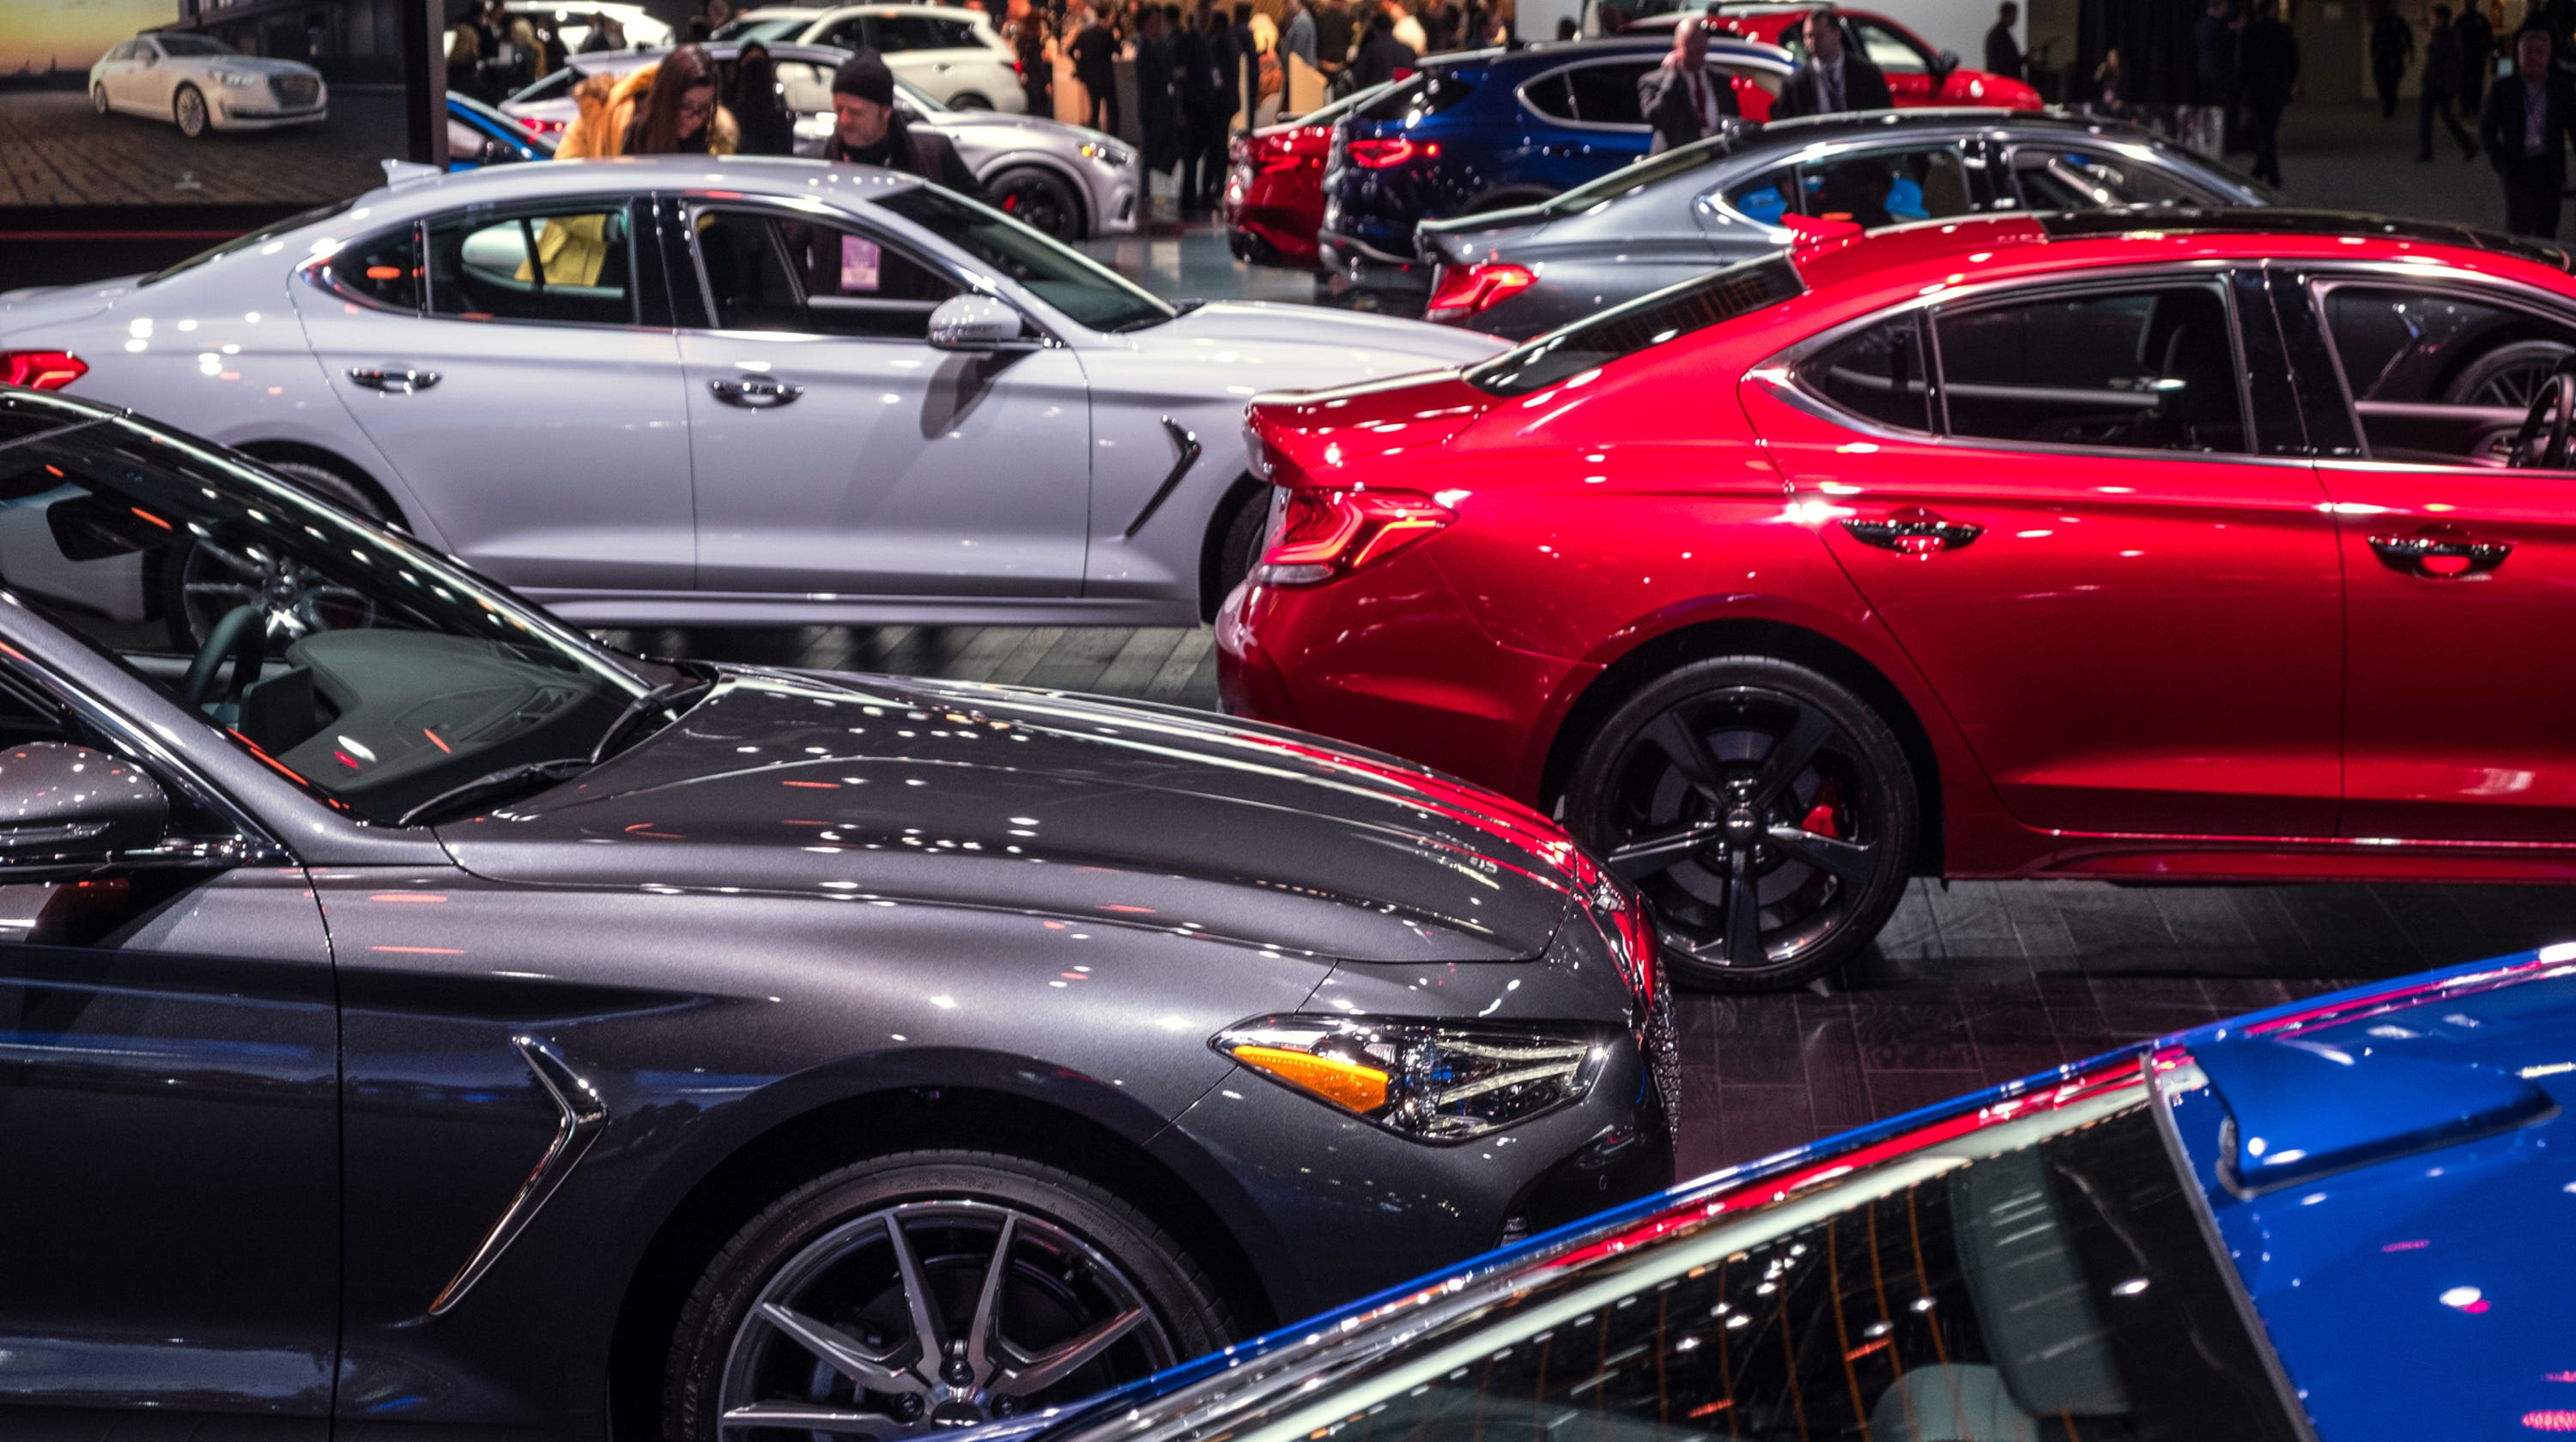 Detroit Auto Show's Best: Mustang, Electric SUV, Ritzy Kia